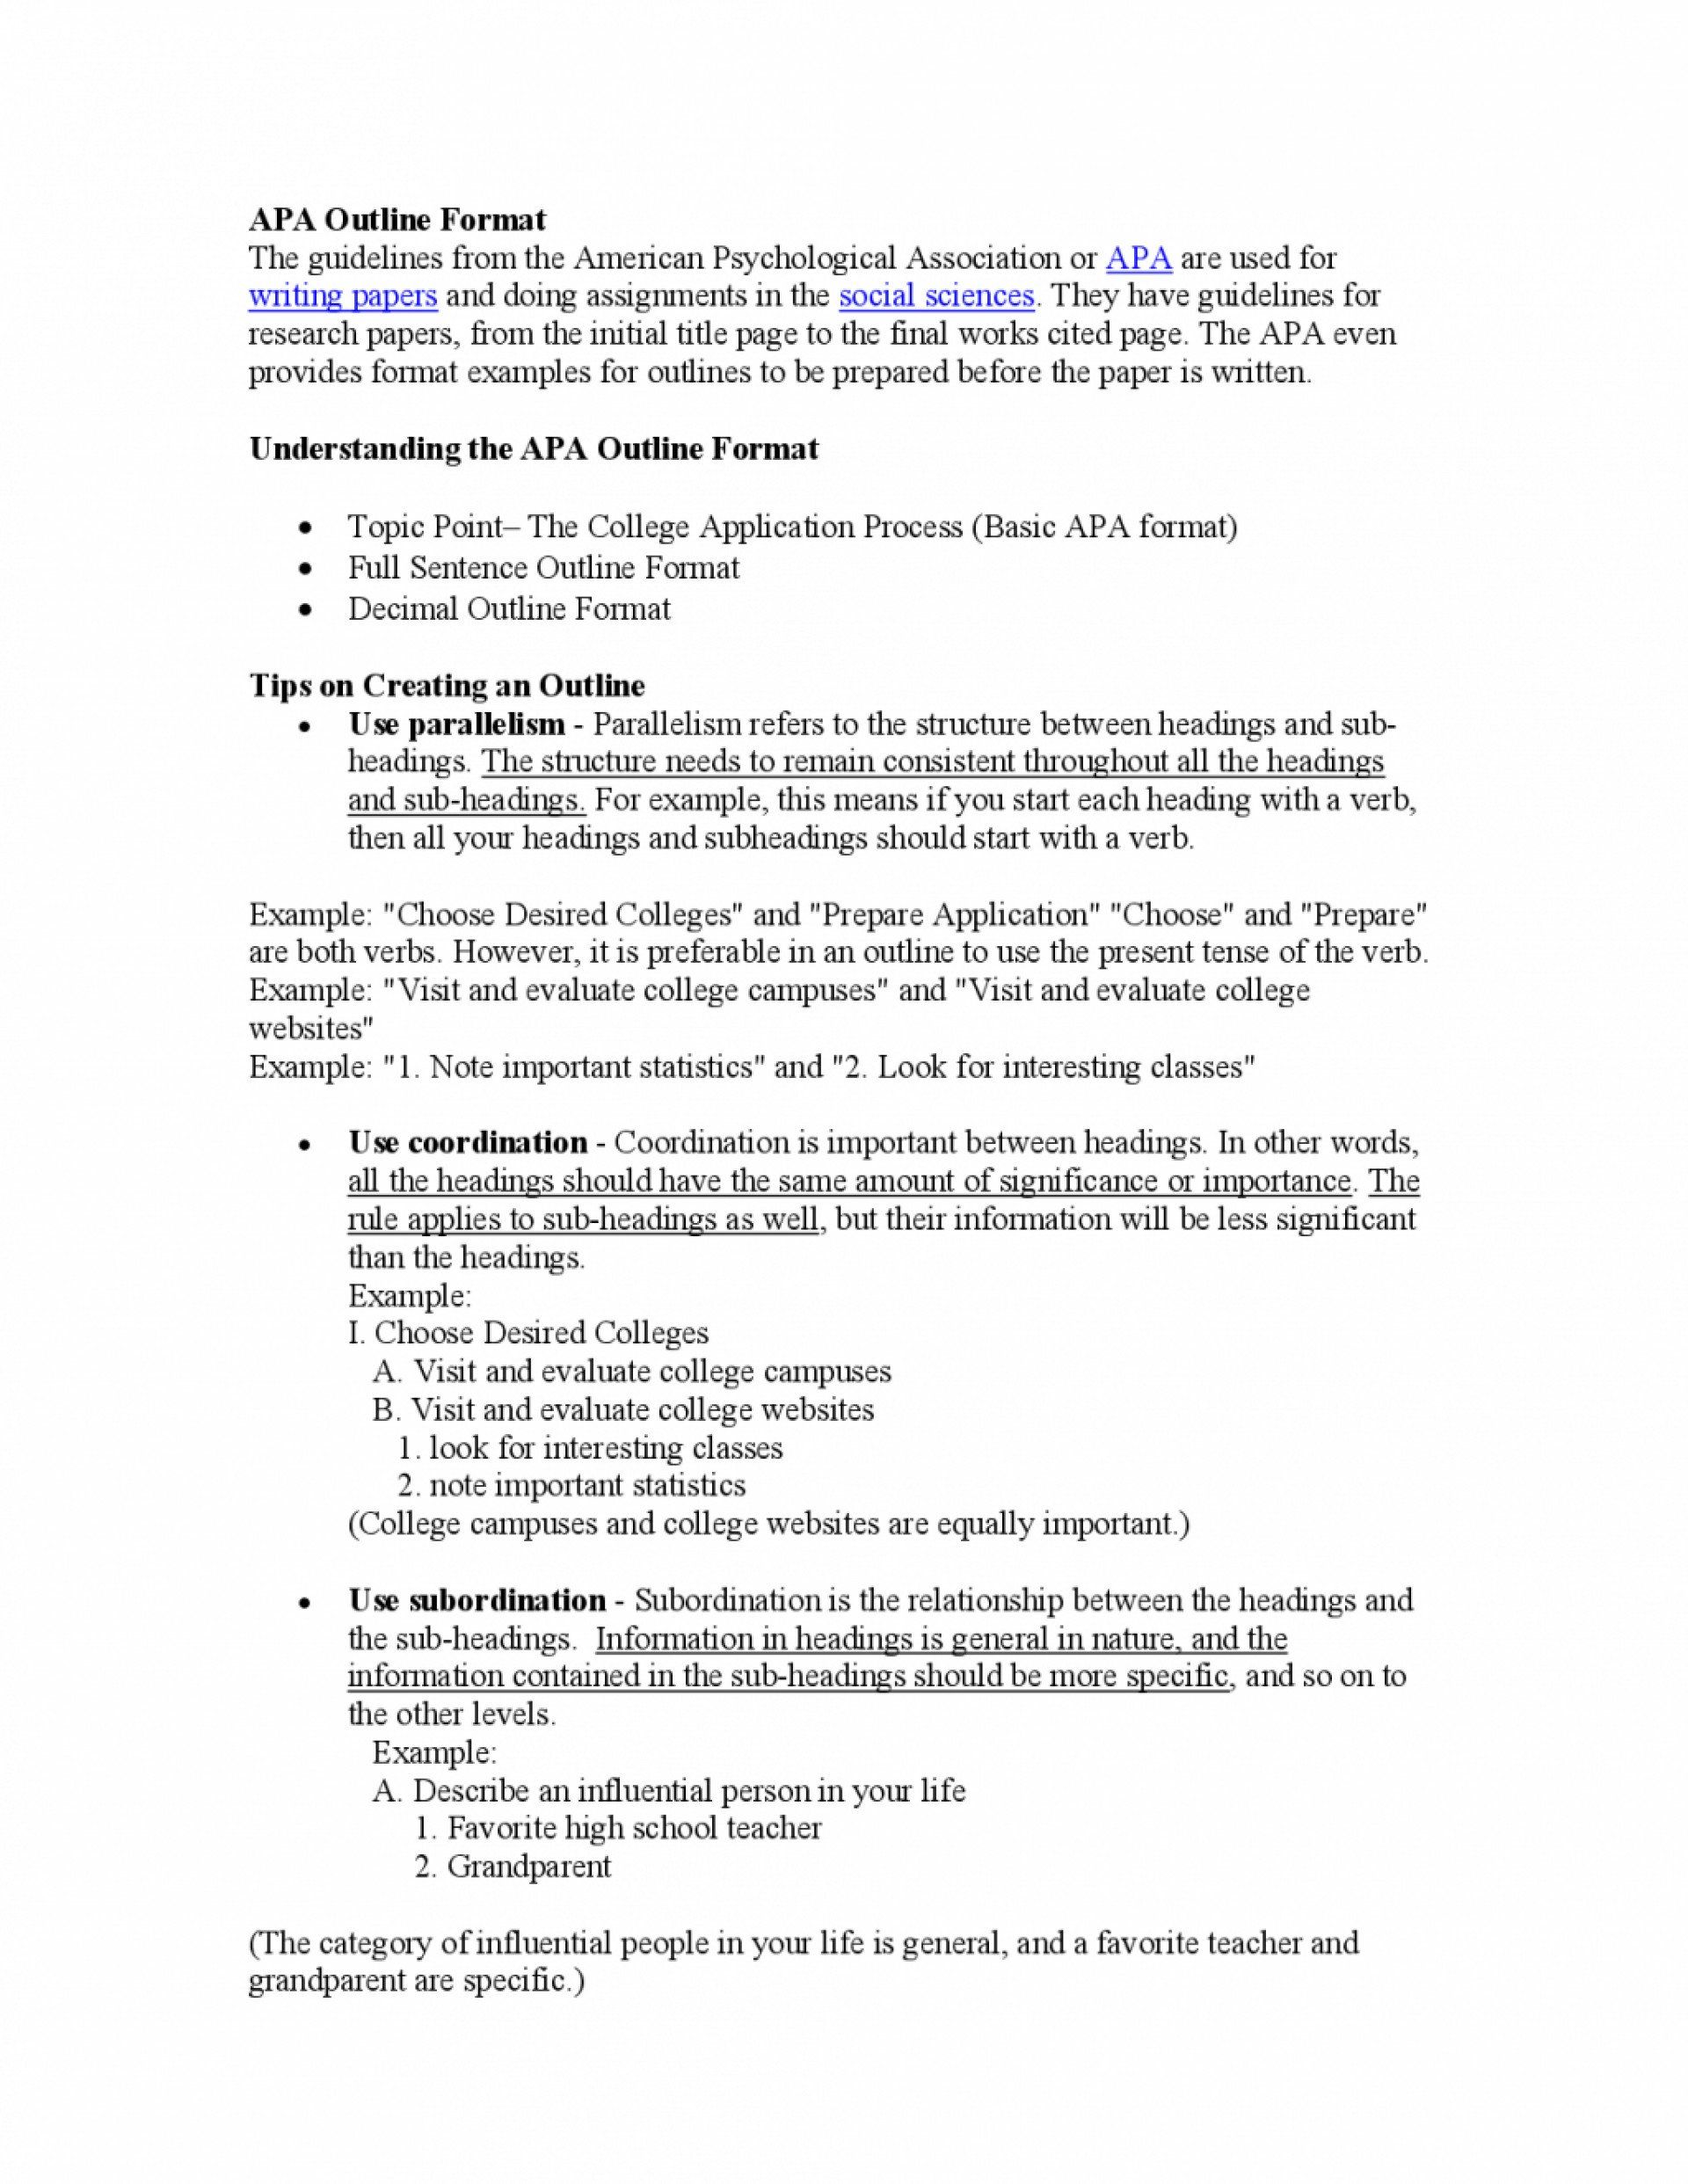 016 Research Paper 20examples Of Outlines For Papers In Apa Format Best Photos Style Outline Example Paper20 1024x1325 Dreaded Examples Sample 1920